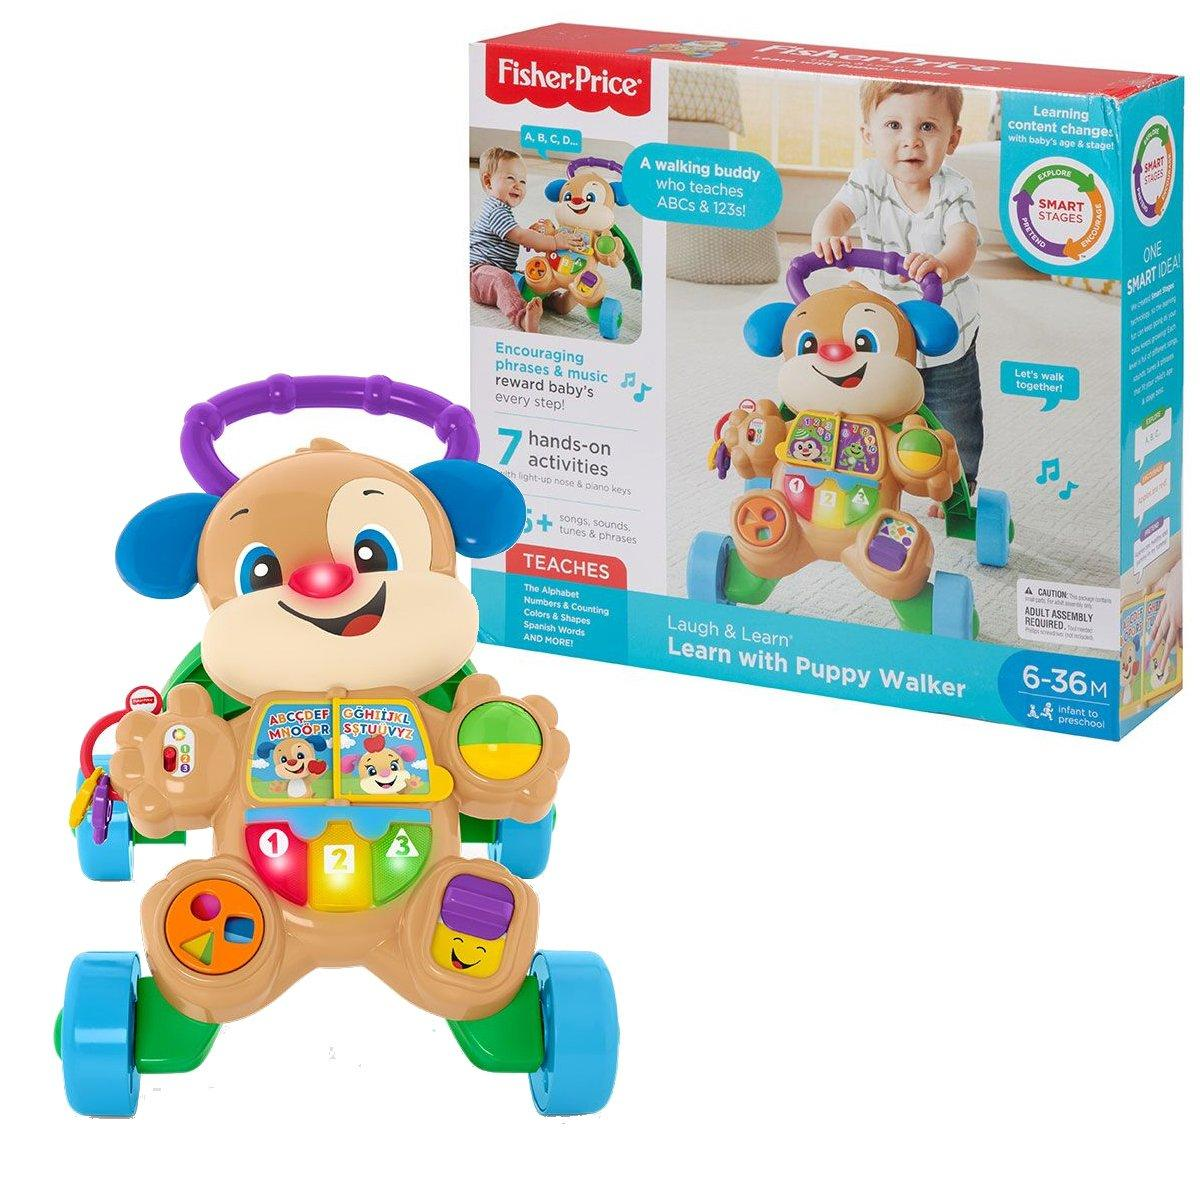 Fisher-Price Ходунки толкатель щенок  Laugh & Learn Smart Stages Learn with Puppy Walker